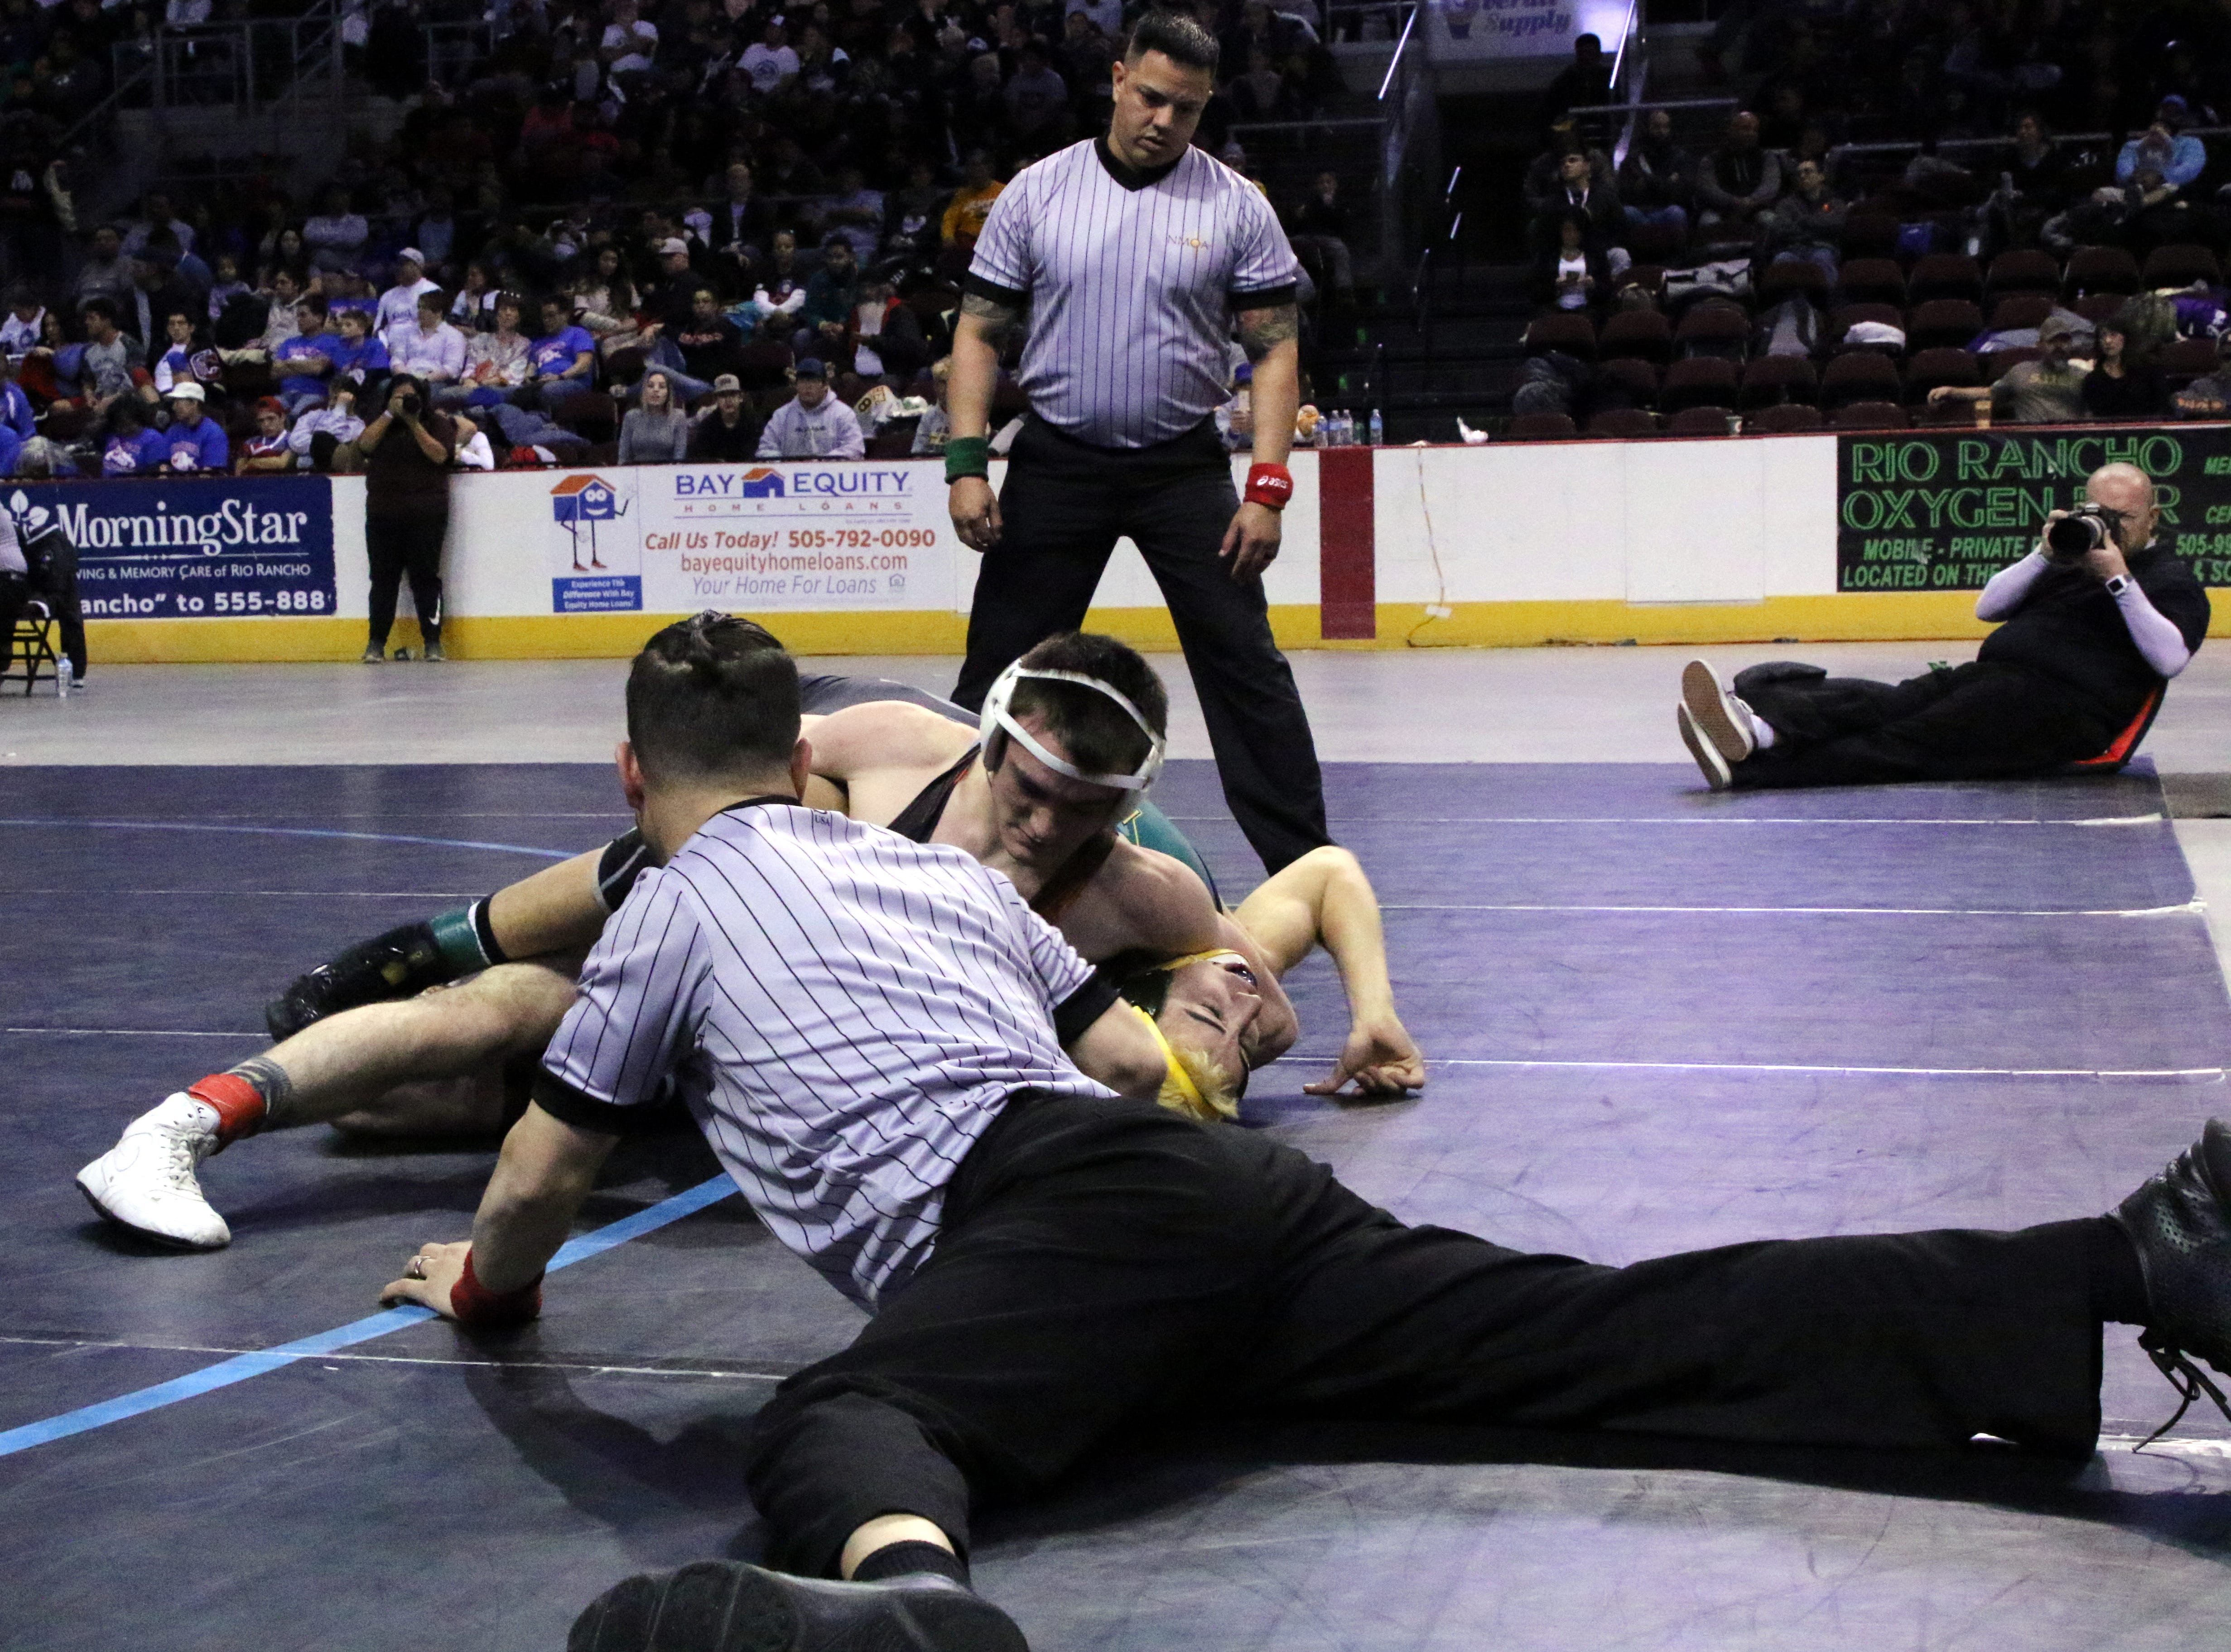 Aztec's Christian Robison works on a pinfall attempt during his championship match on Saturday.